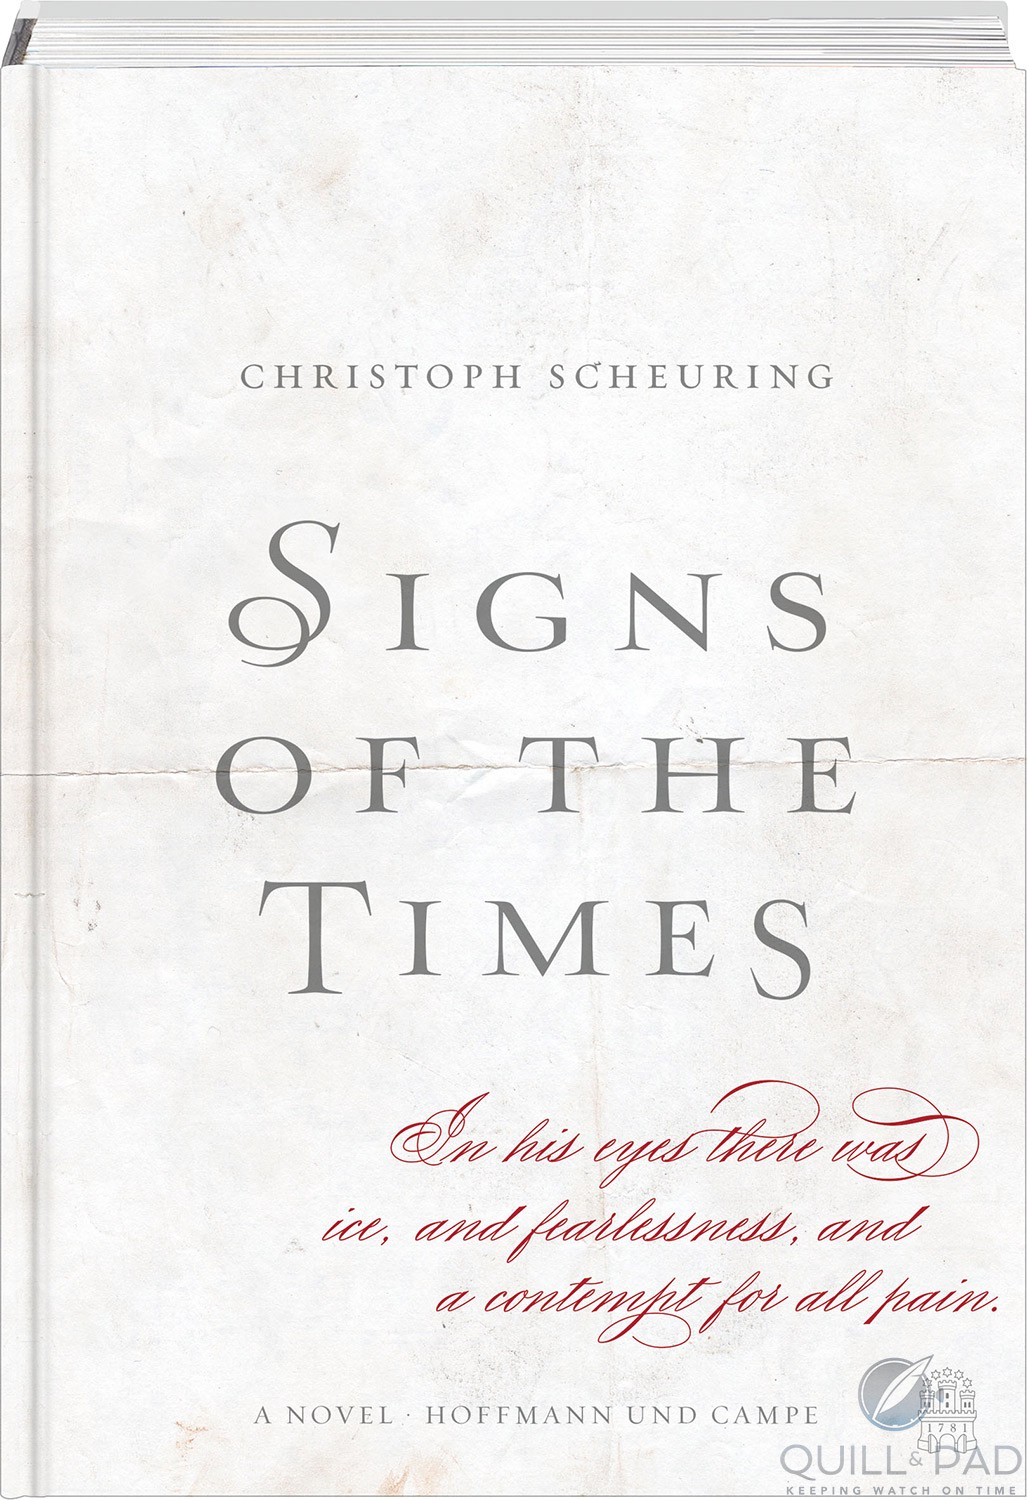 Cover of the historical novel 'Signs of the Times' by Christoph Scheuring